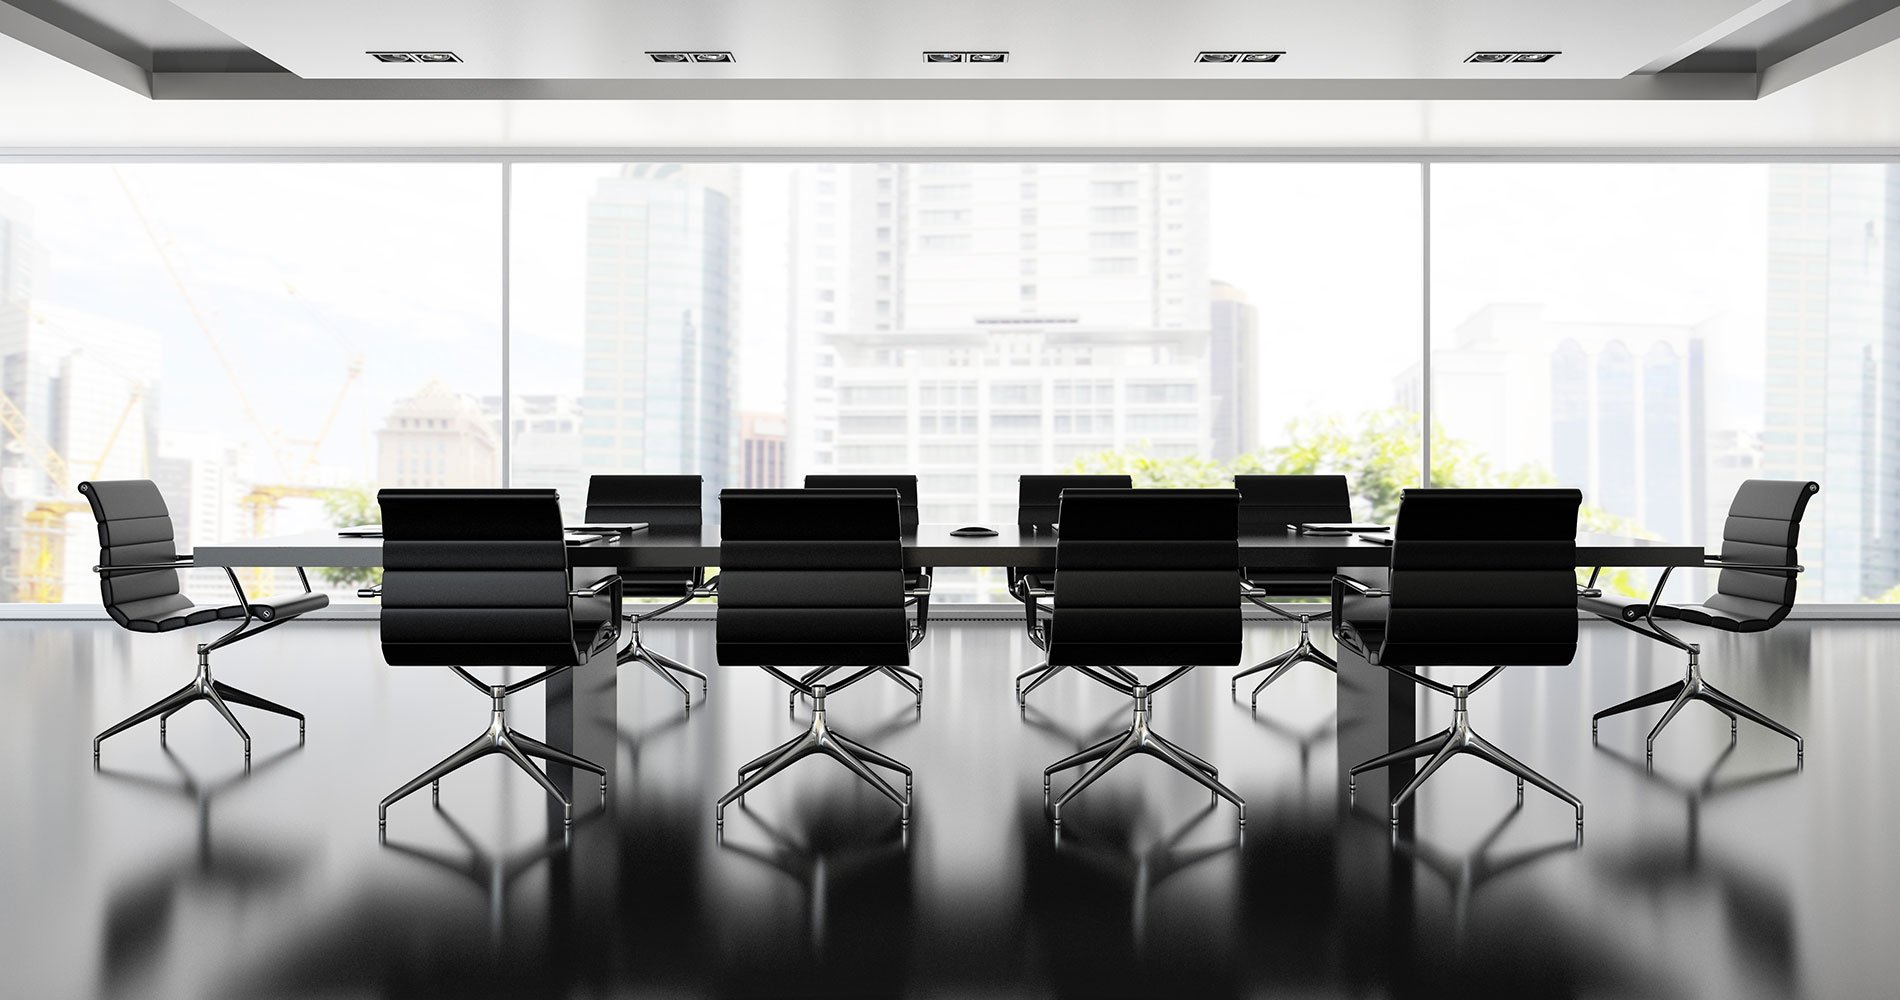 The Best 4K Screens for the Boardroom